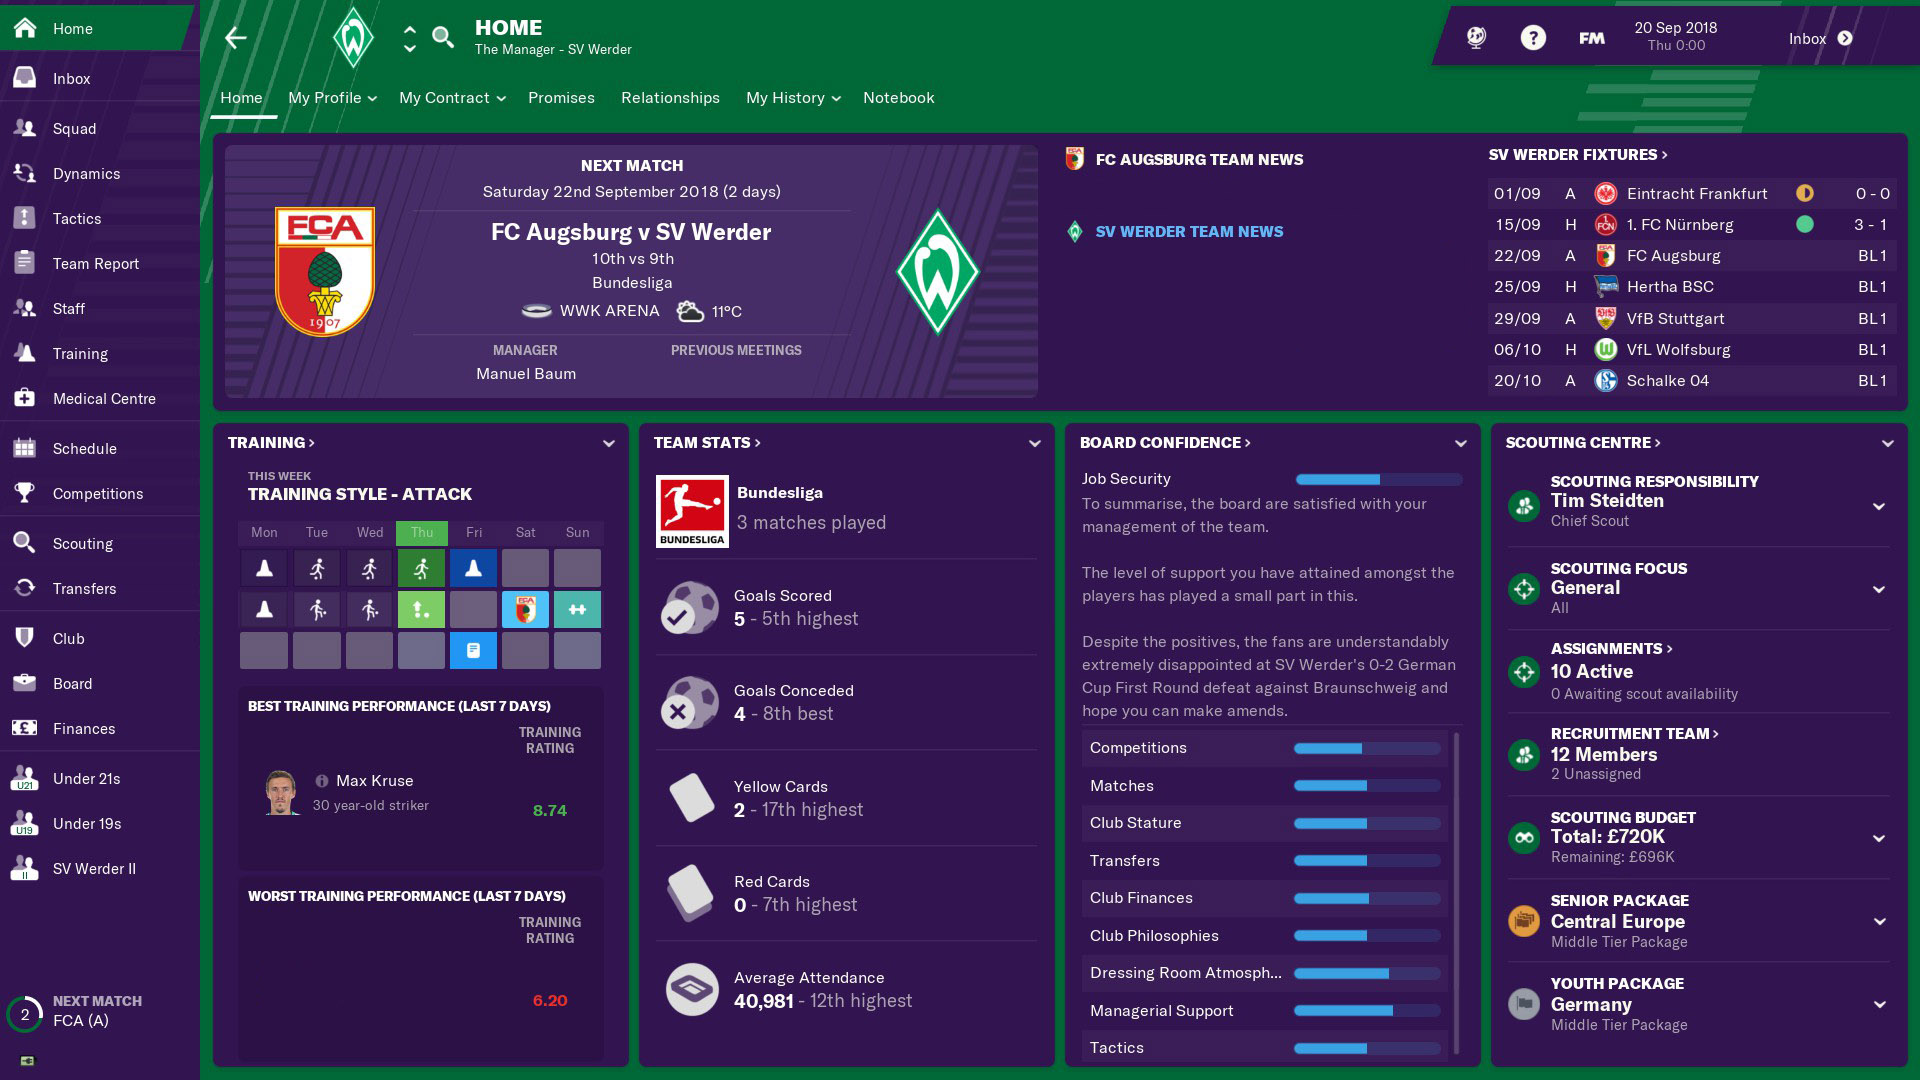 Football Manager 2019 Download PC - FM 2019 Full Game PC